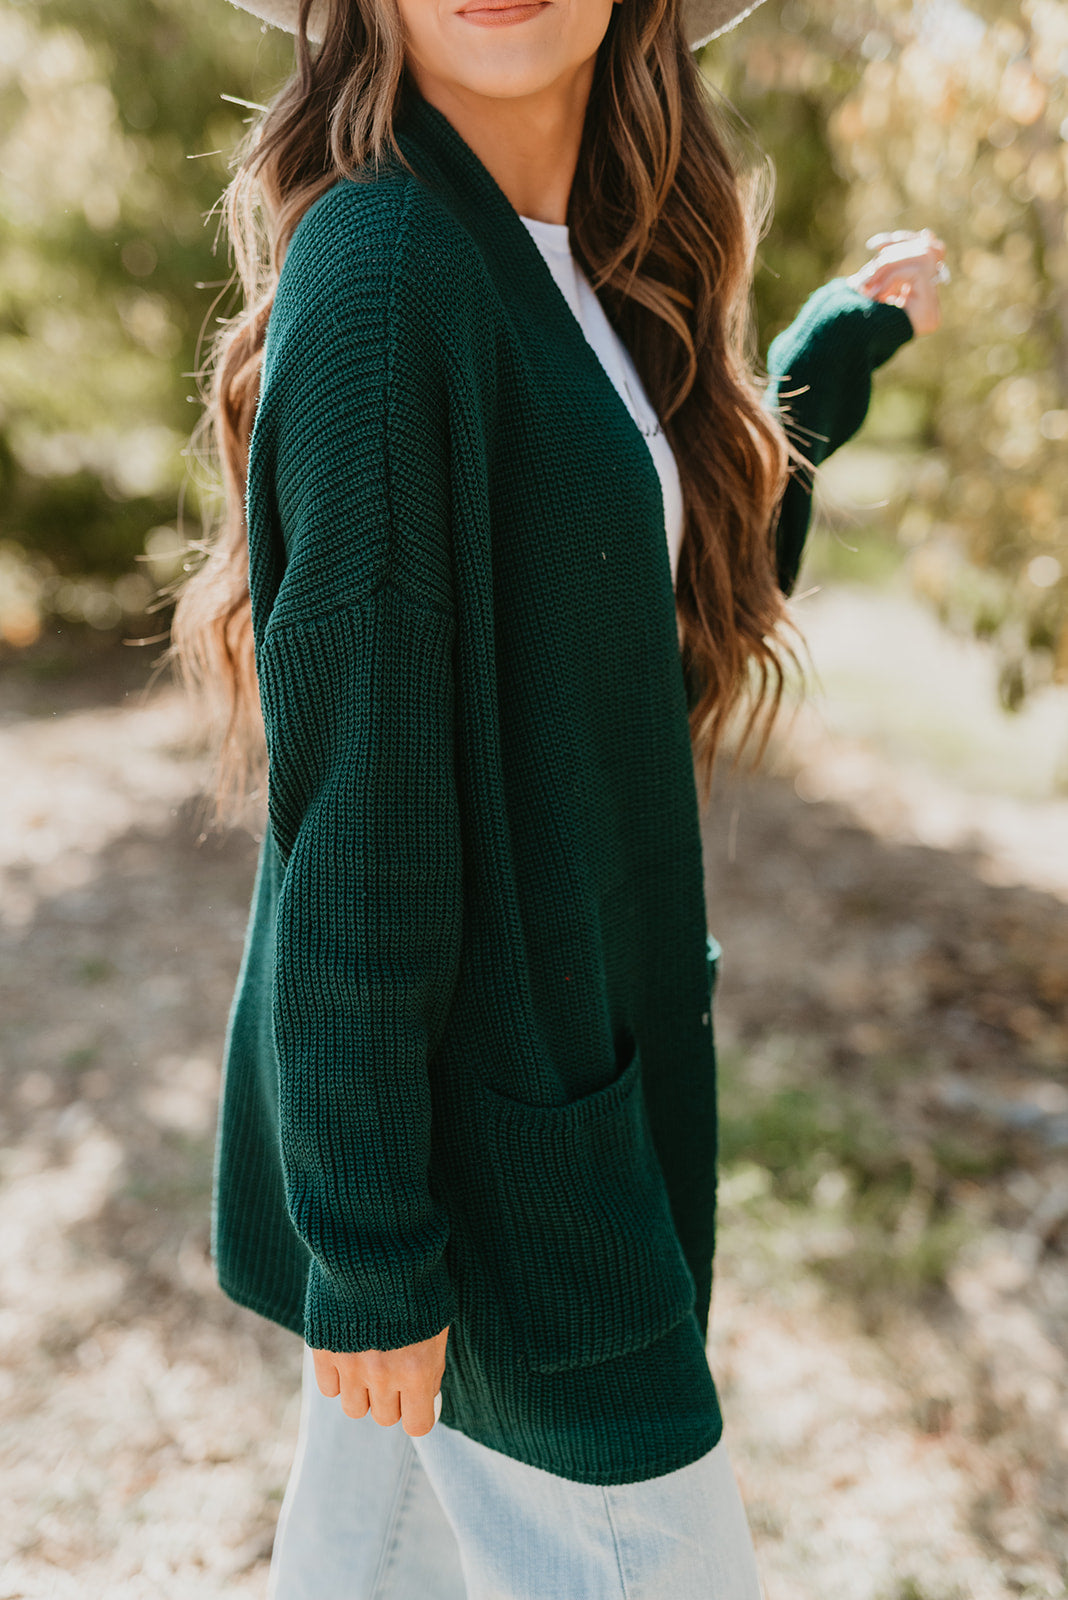 THE KENDALL SOLID KNIT CARDIGAN IN HUNTER GREEN